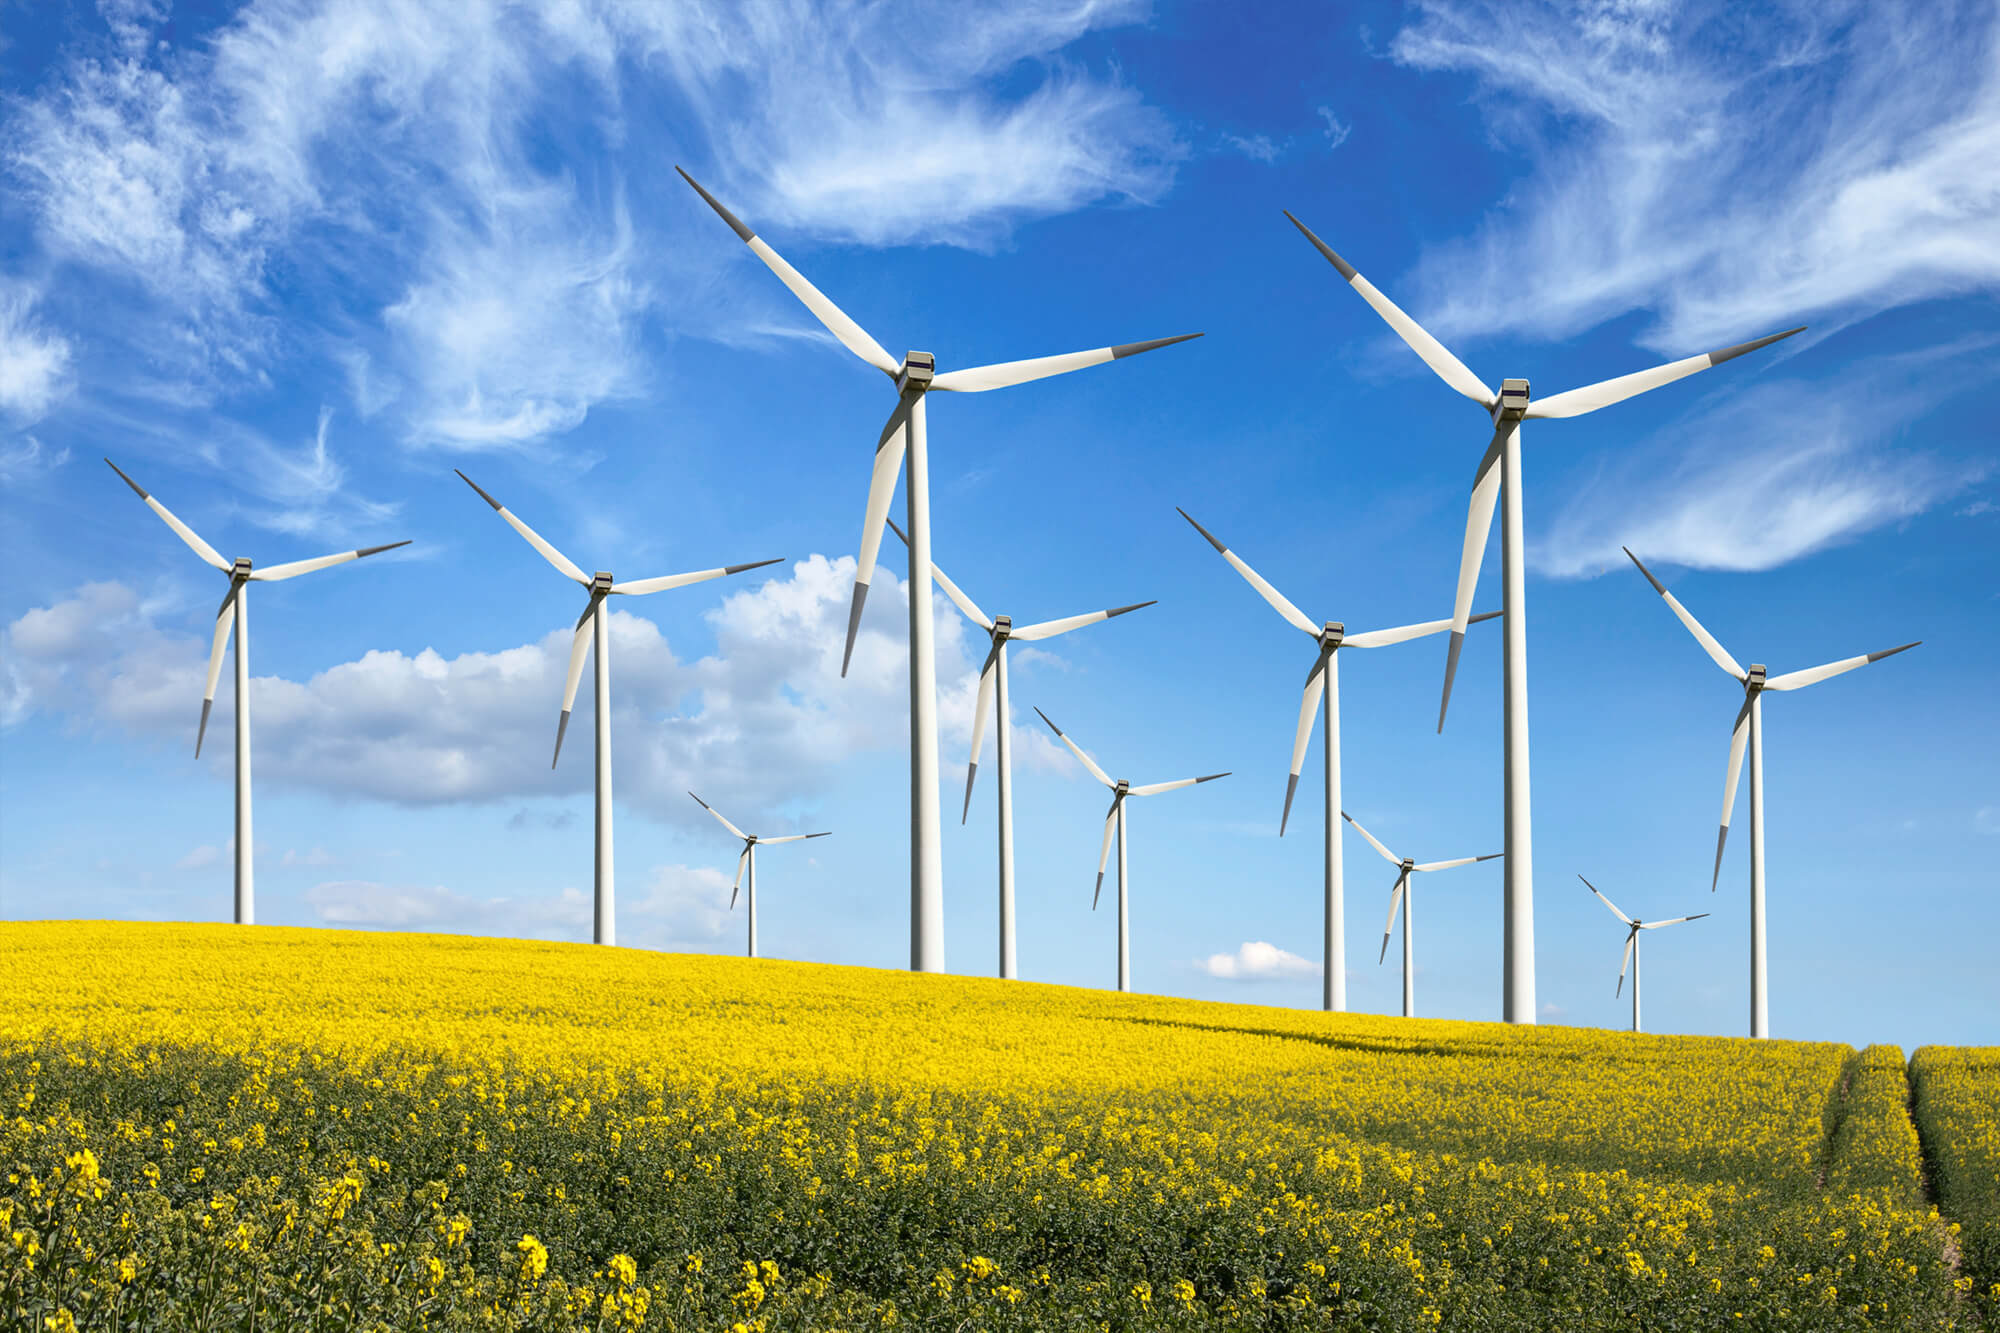 Wind turbines on a hill with yellow flowers and a blue sky in the background.